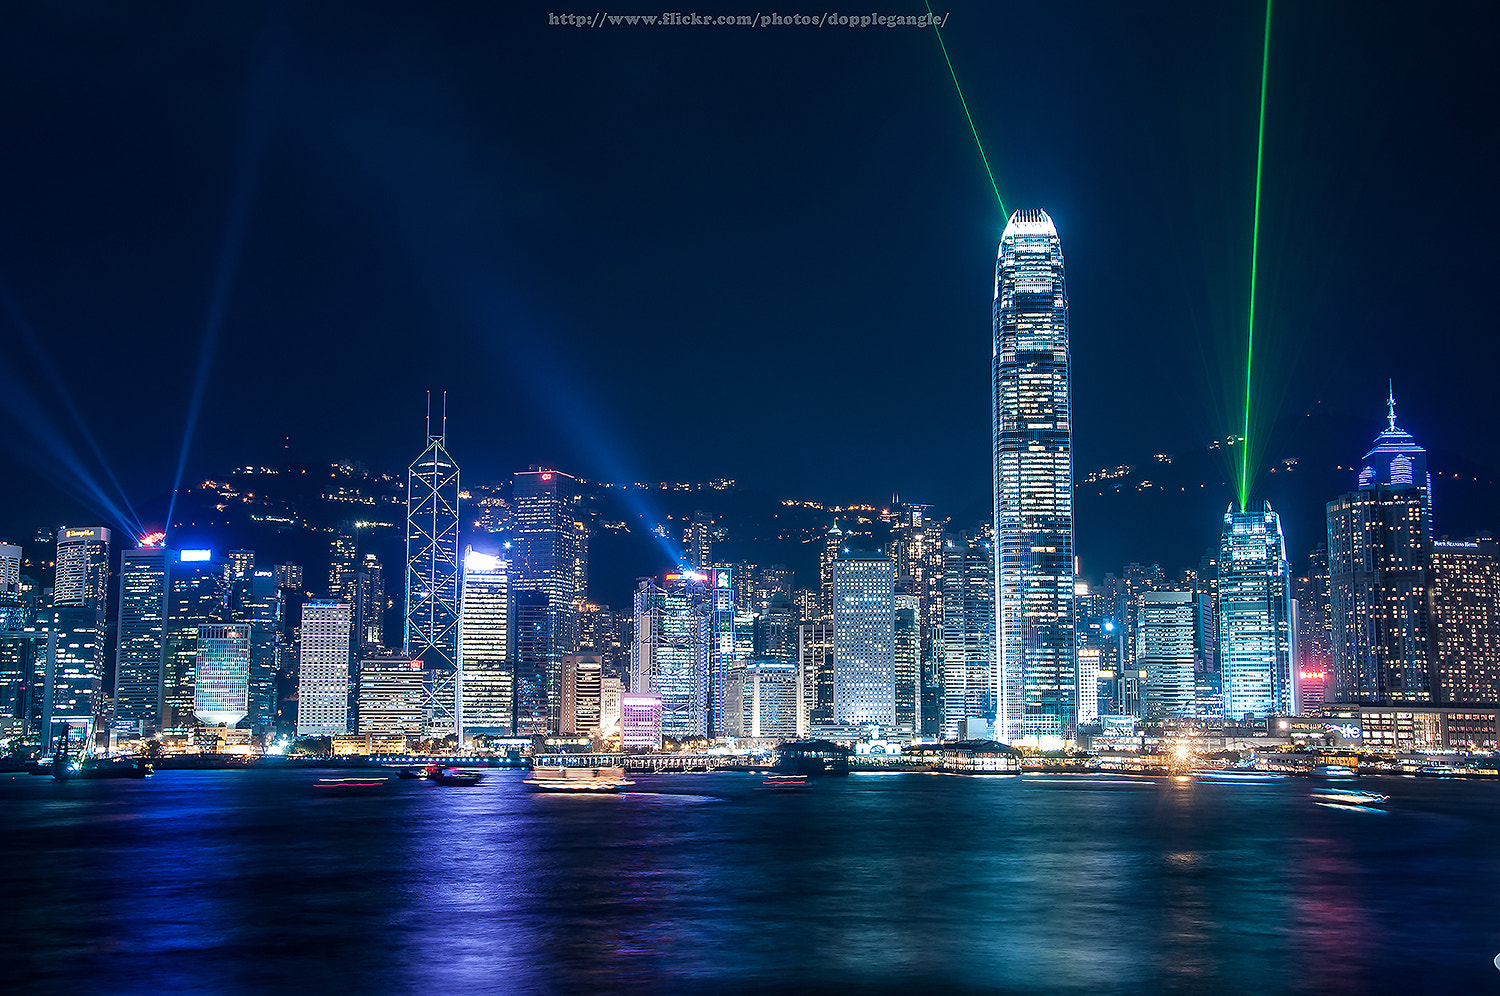 Photograph Symphony of Light in Hong Kong by Vorravut Thanareukchai on 500px